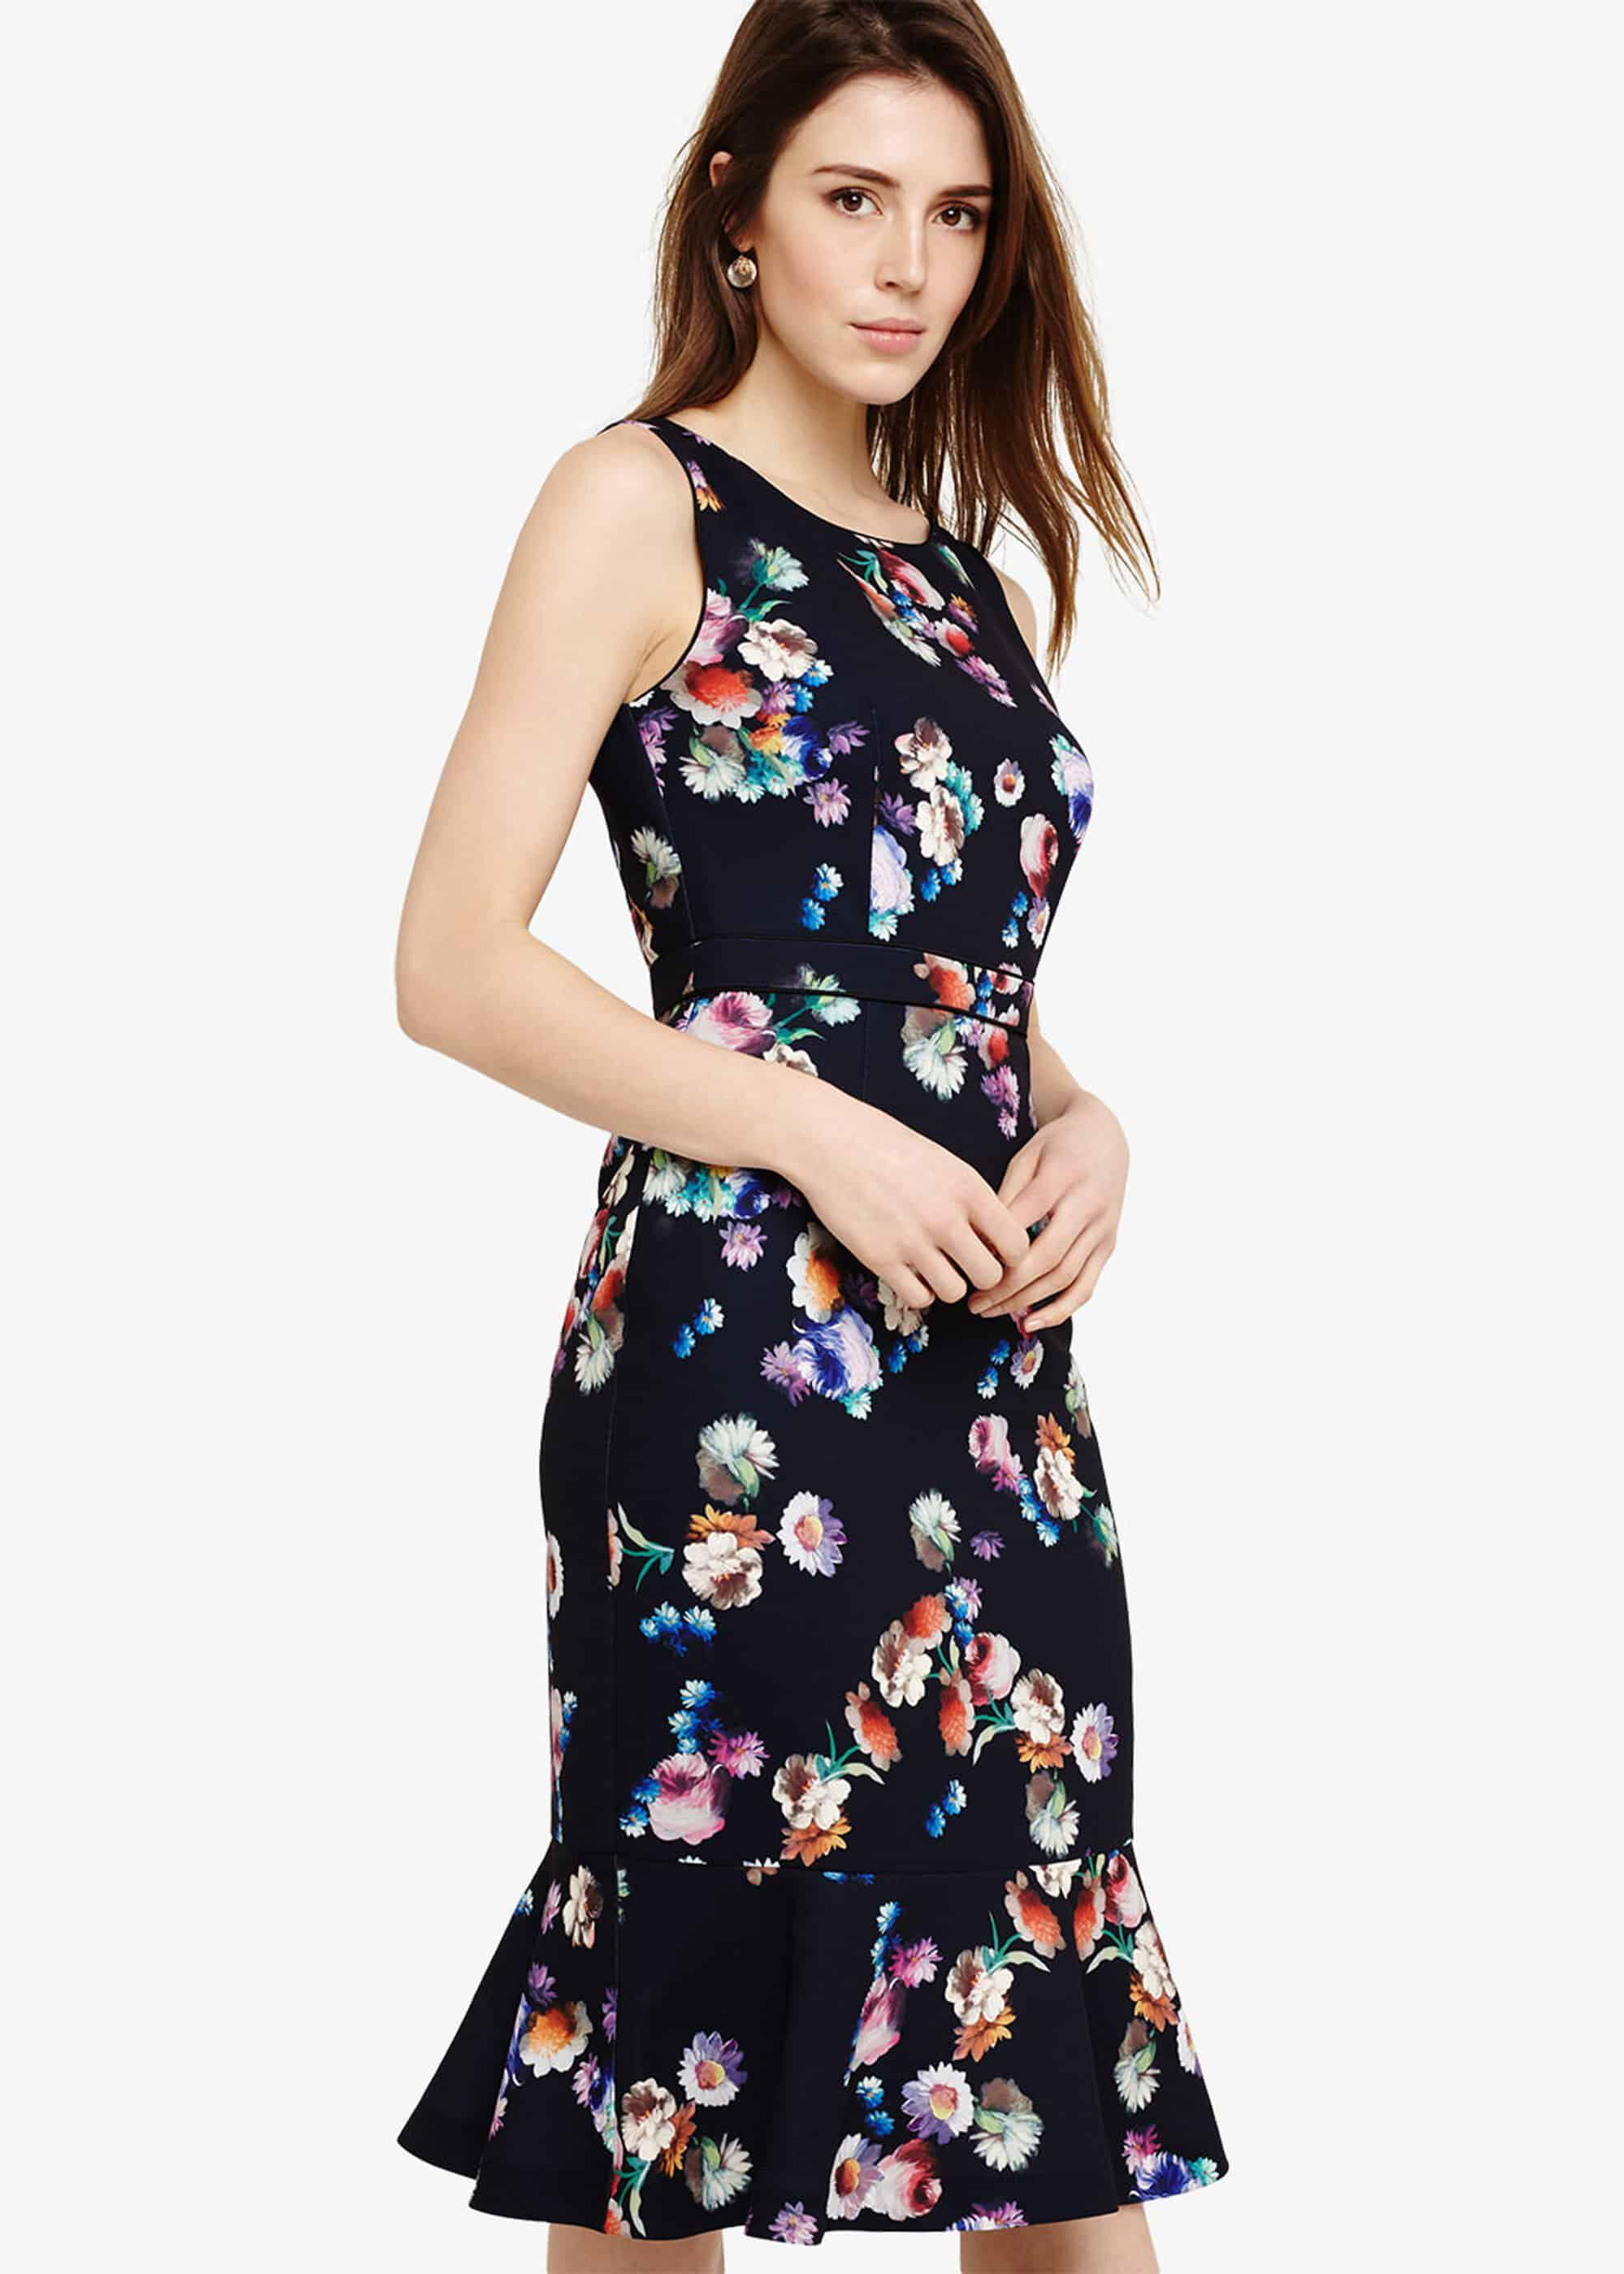 Rosemont Floral Print Dress Reviews Phase Eight Online Reviews Feefo